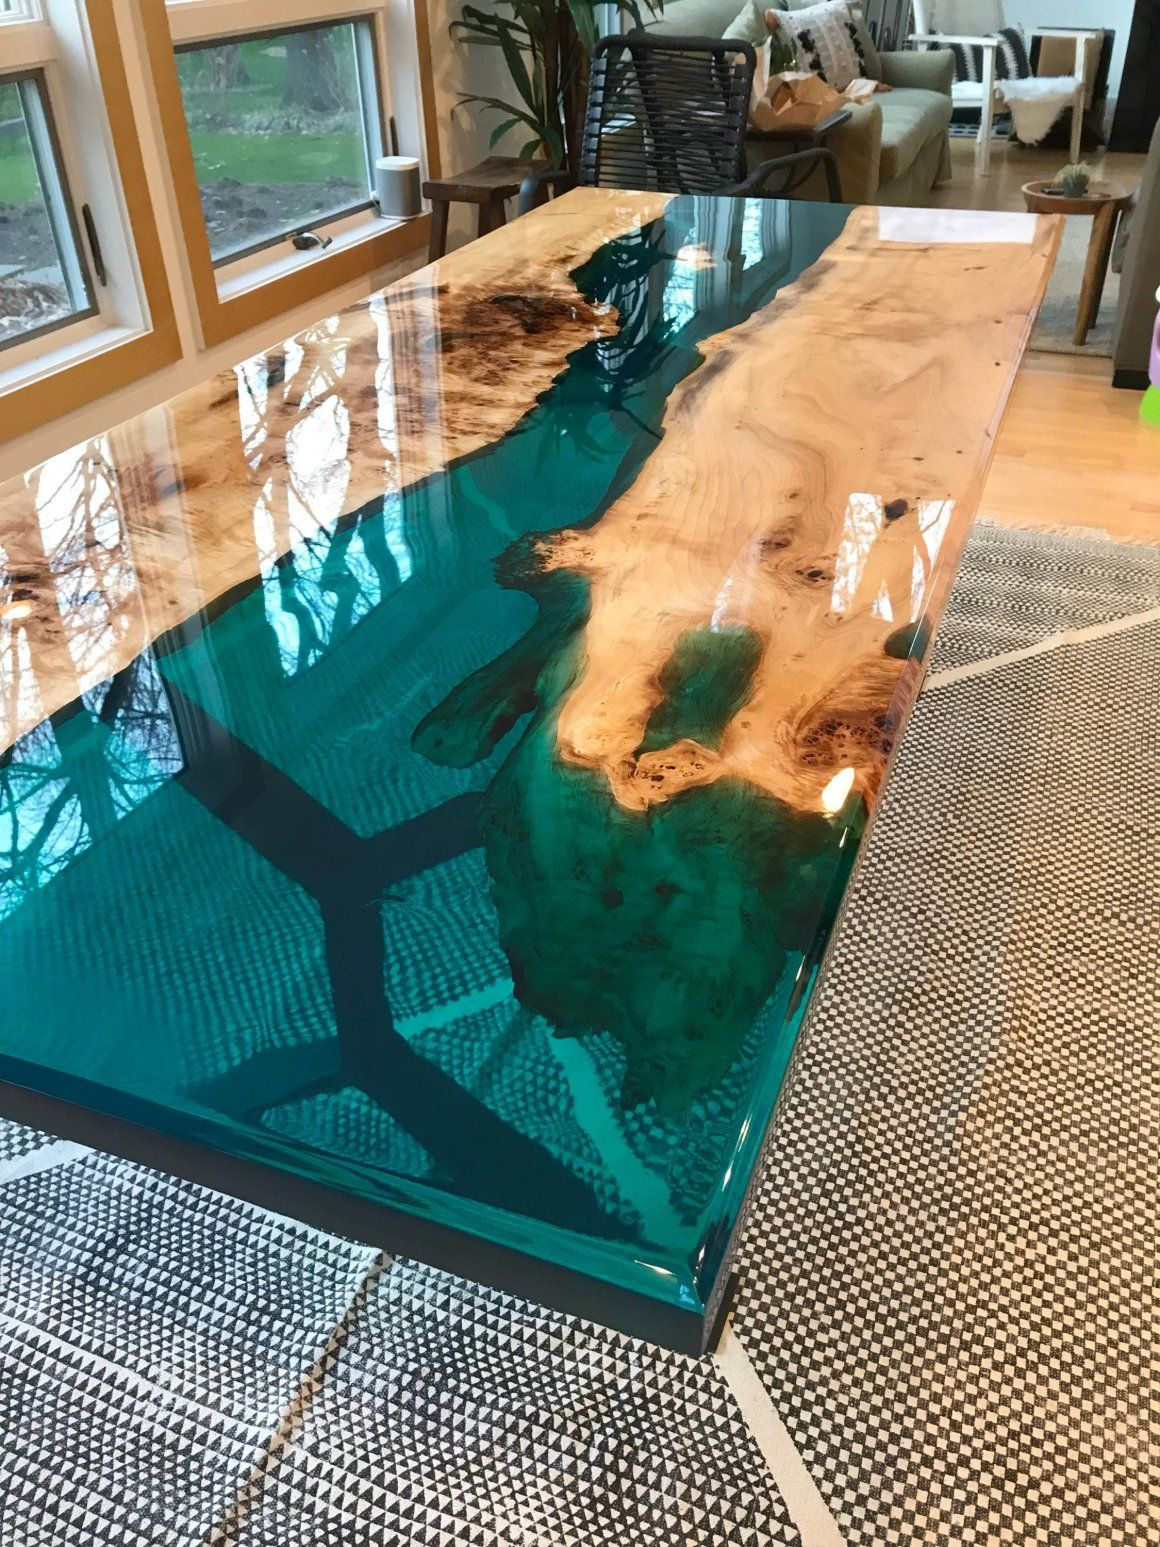 Amazing Epoxy Table Top Ideas Anyone'll Love   My Home My Zone